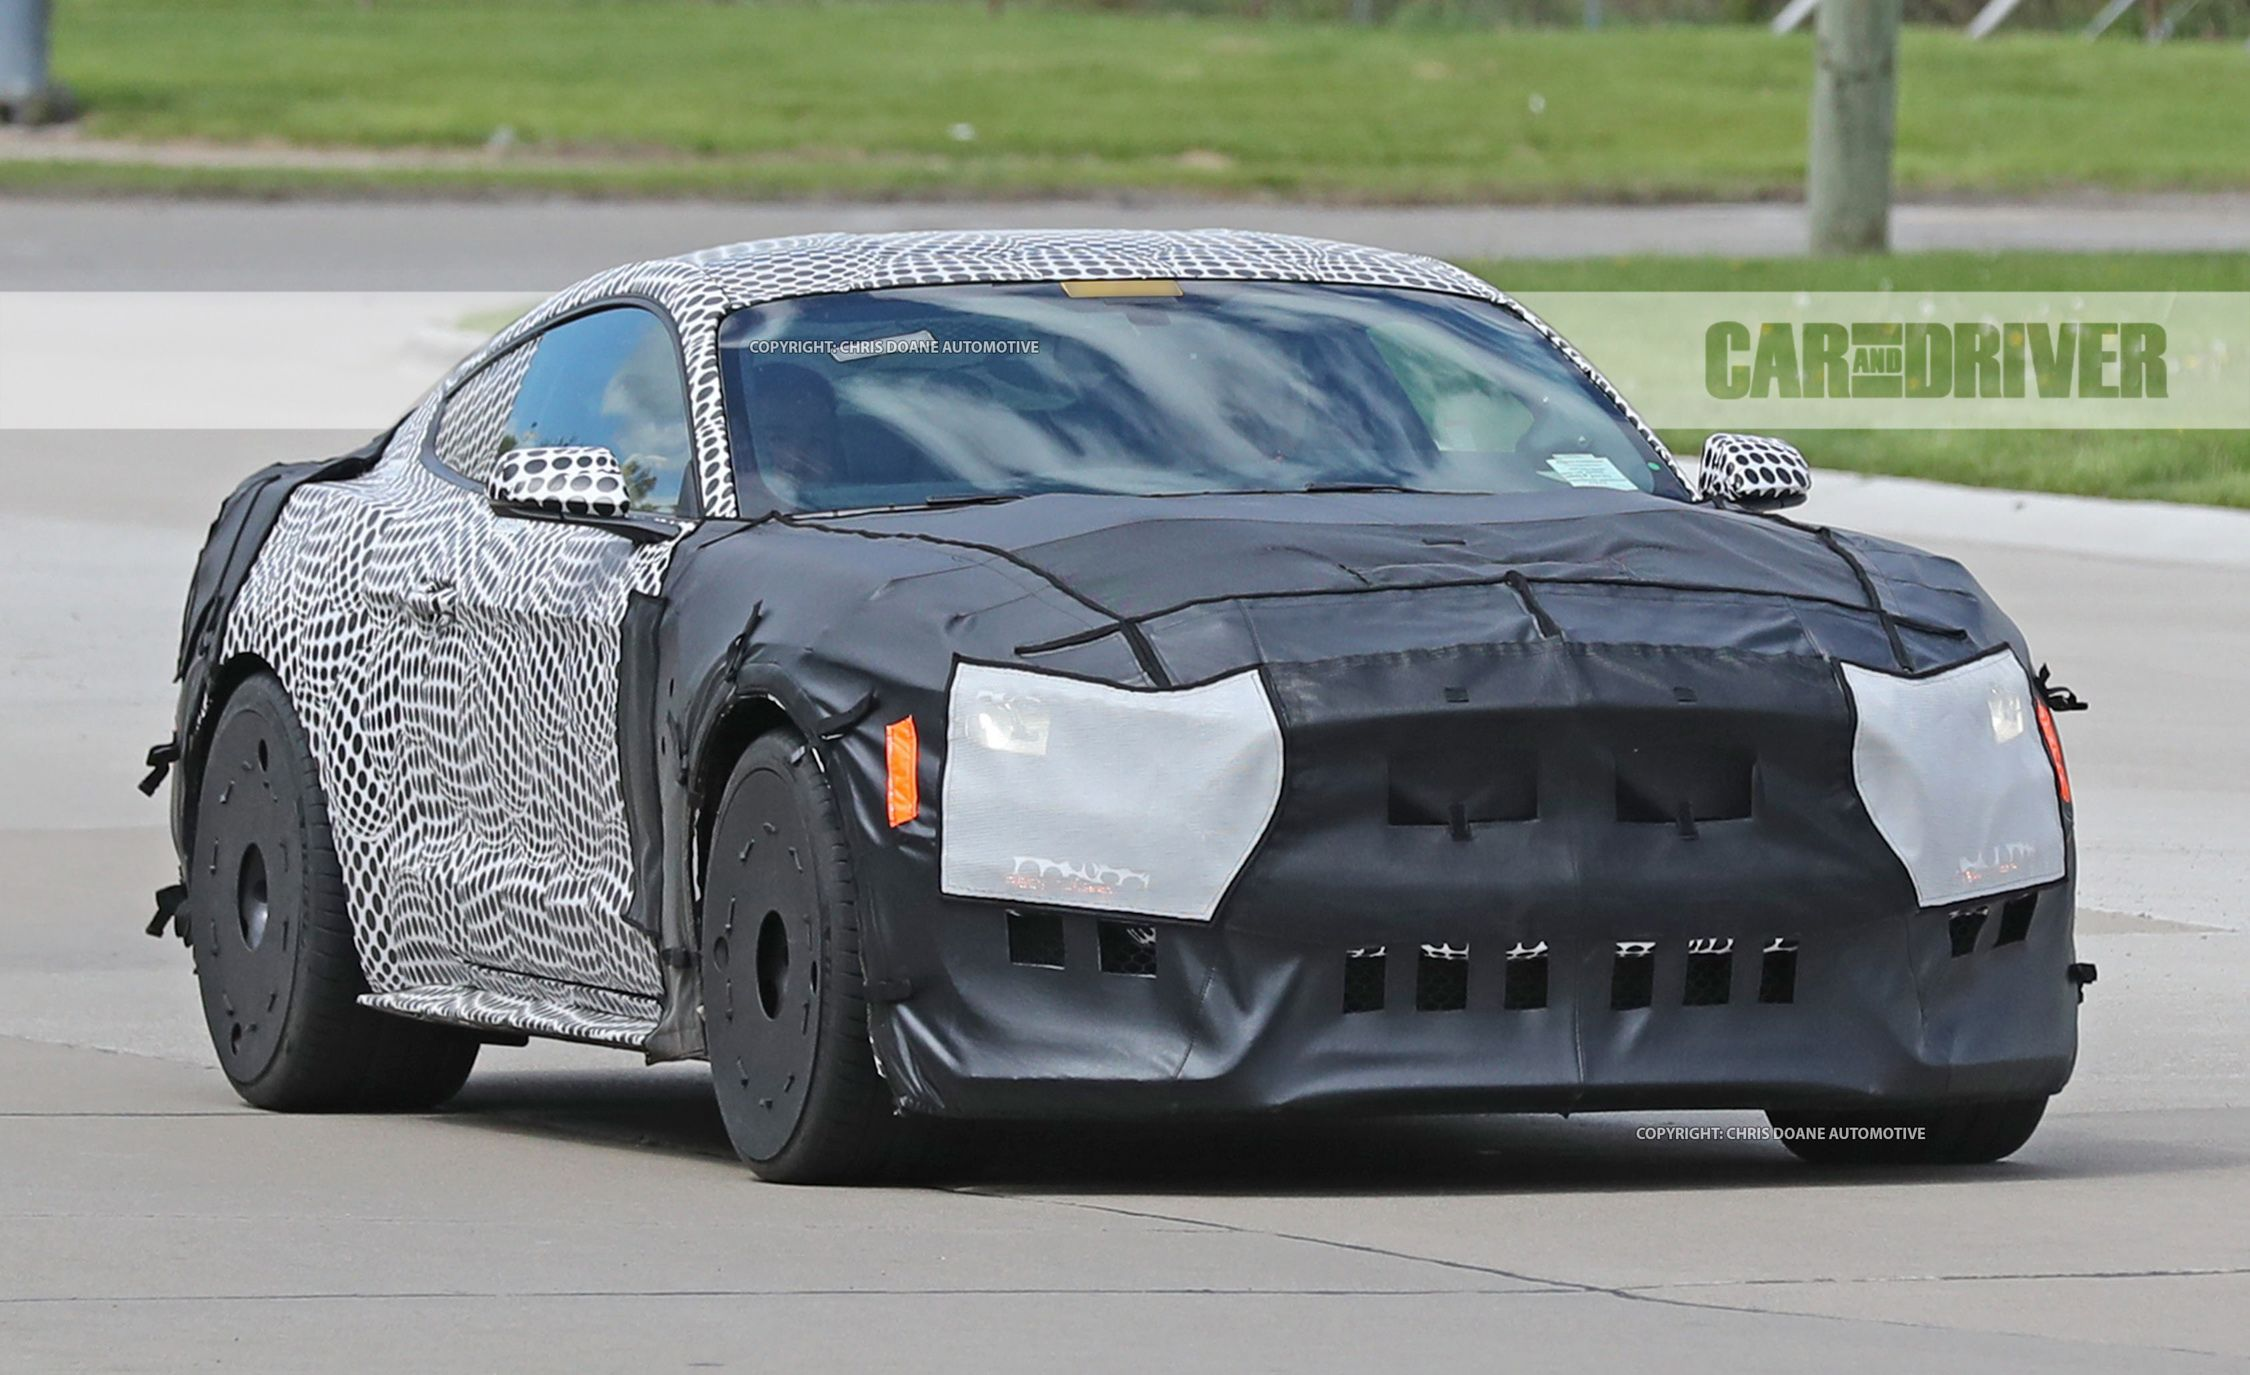 2018 Ford Mustang Shelby Gt500 Spied News Car And Driver